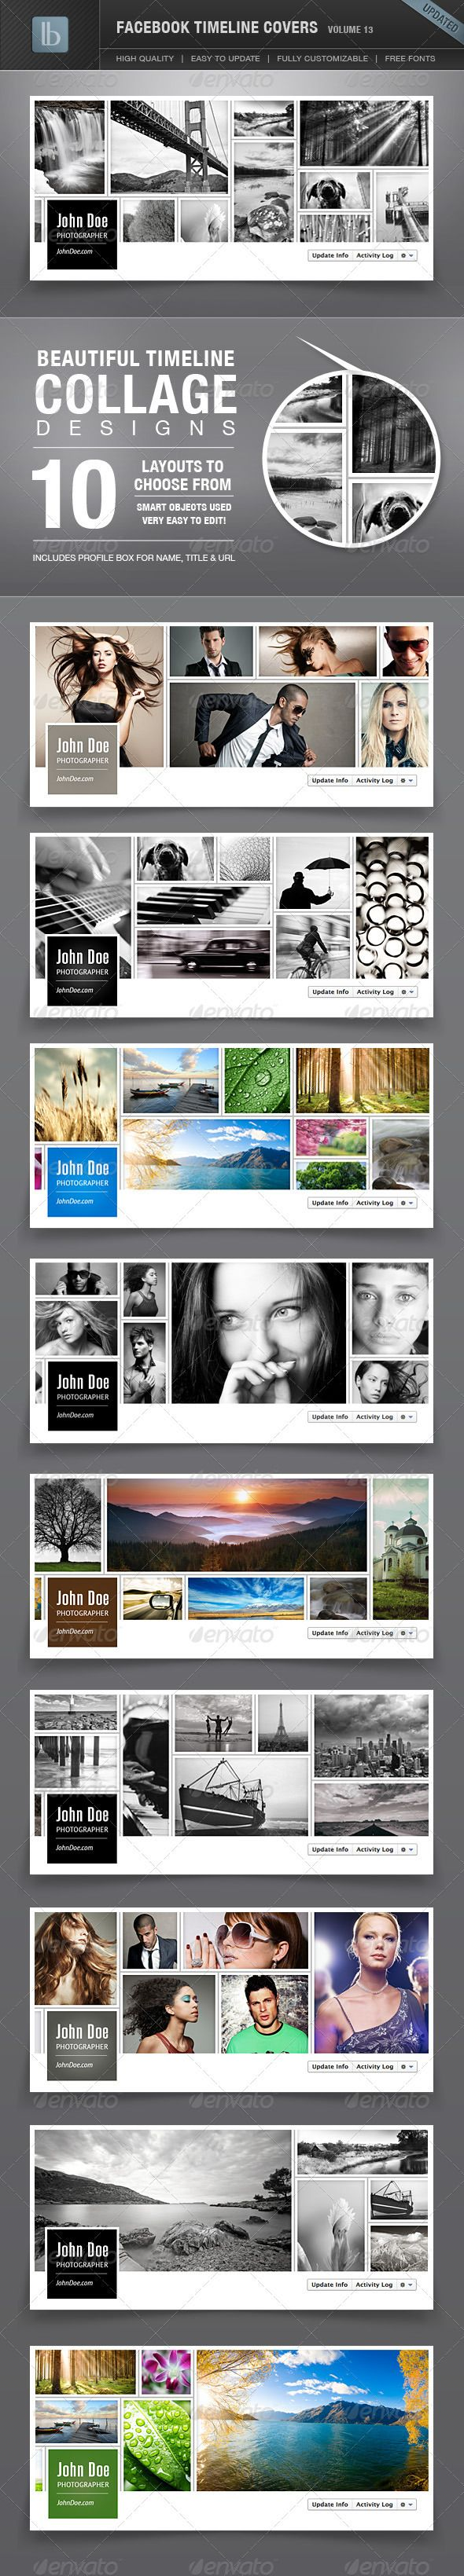 Facebook Timeline Covers | Volume 13 - This package includes 10 unique Facebook Timeline Cover designed in Photoshop. Well organized layer sets makes it easy to edit. Fully customizable and very easy to update. All fonts used are available for download, nice and easy! These are perfect for photographers and anyone who loves photo collages.